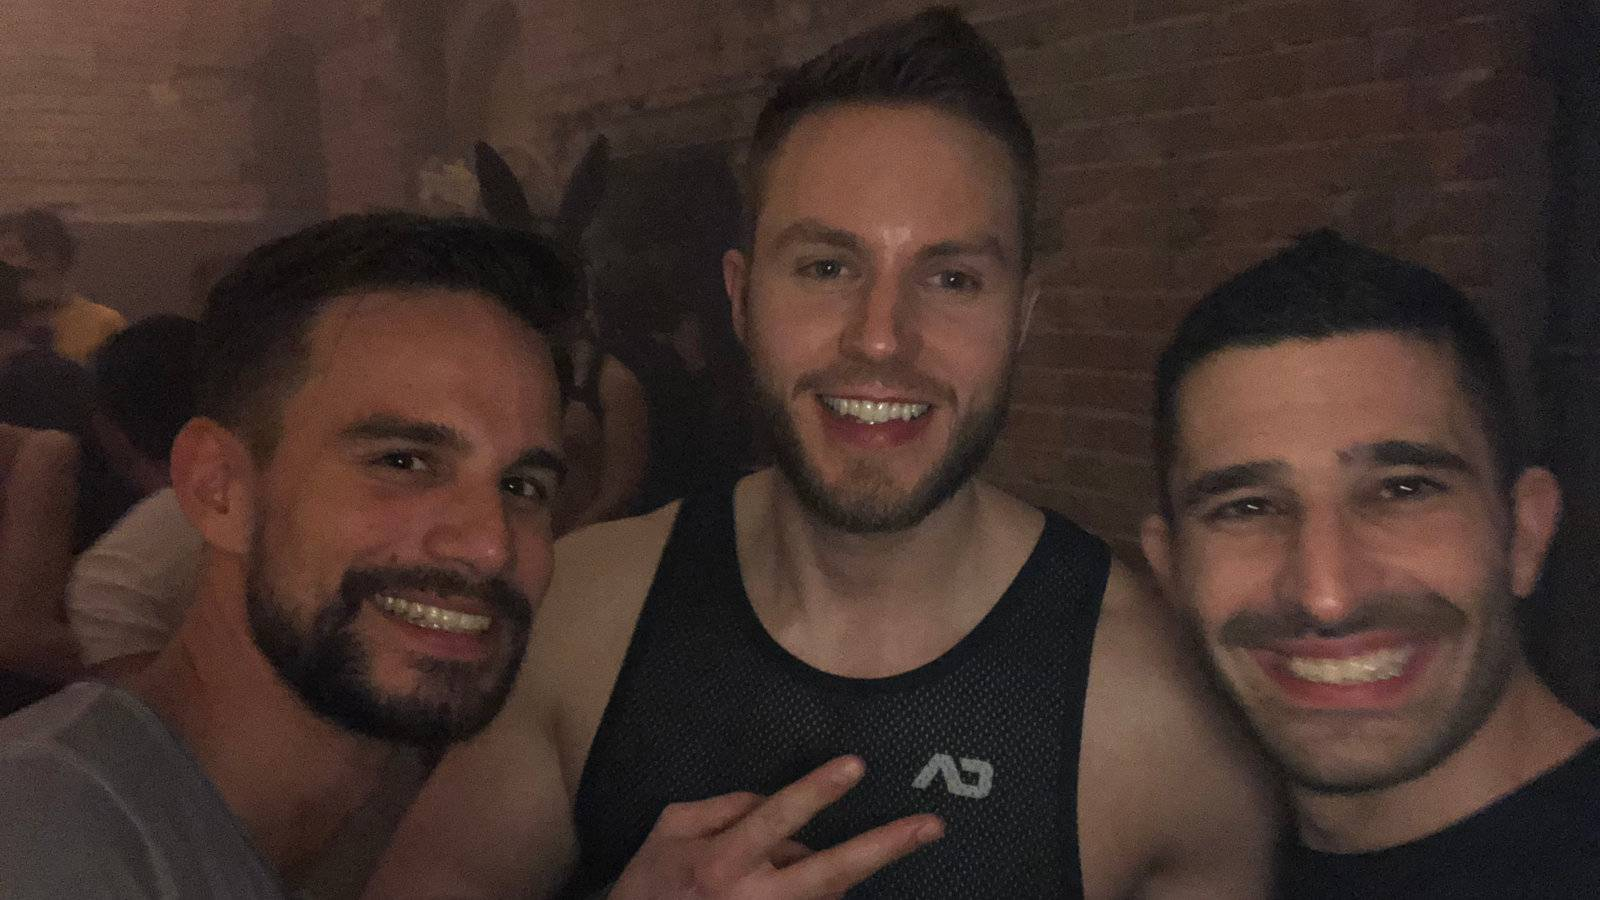 If it's your first time in Berlin or you're travelling alone, then a gay night-time tour is a wonderful way to make friends while visiting the best gay clubs and bars in the city